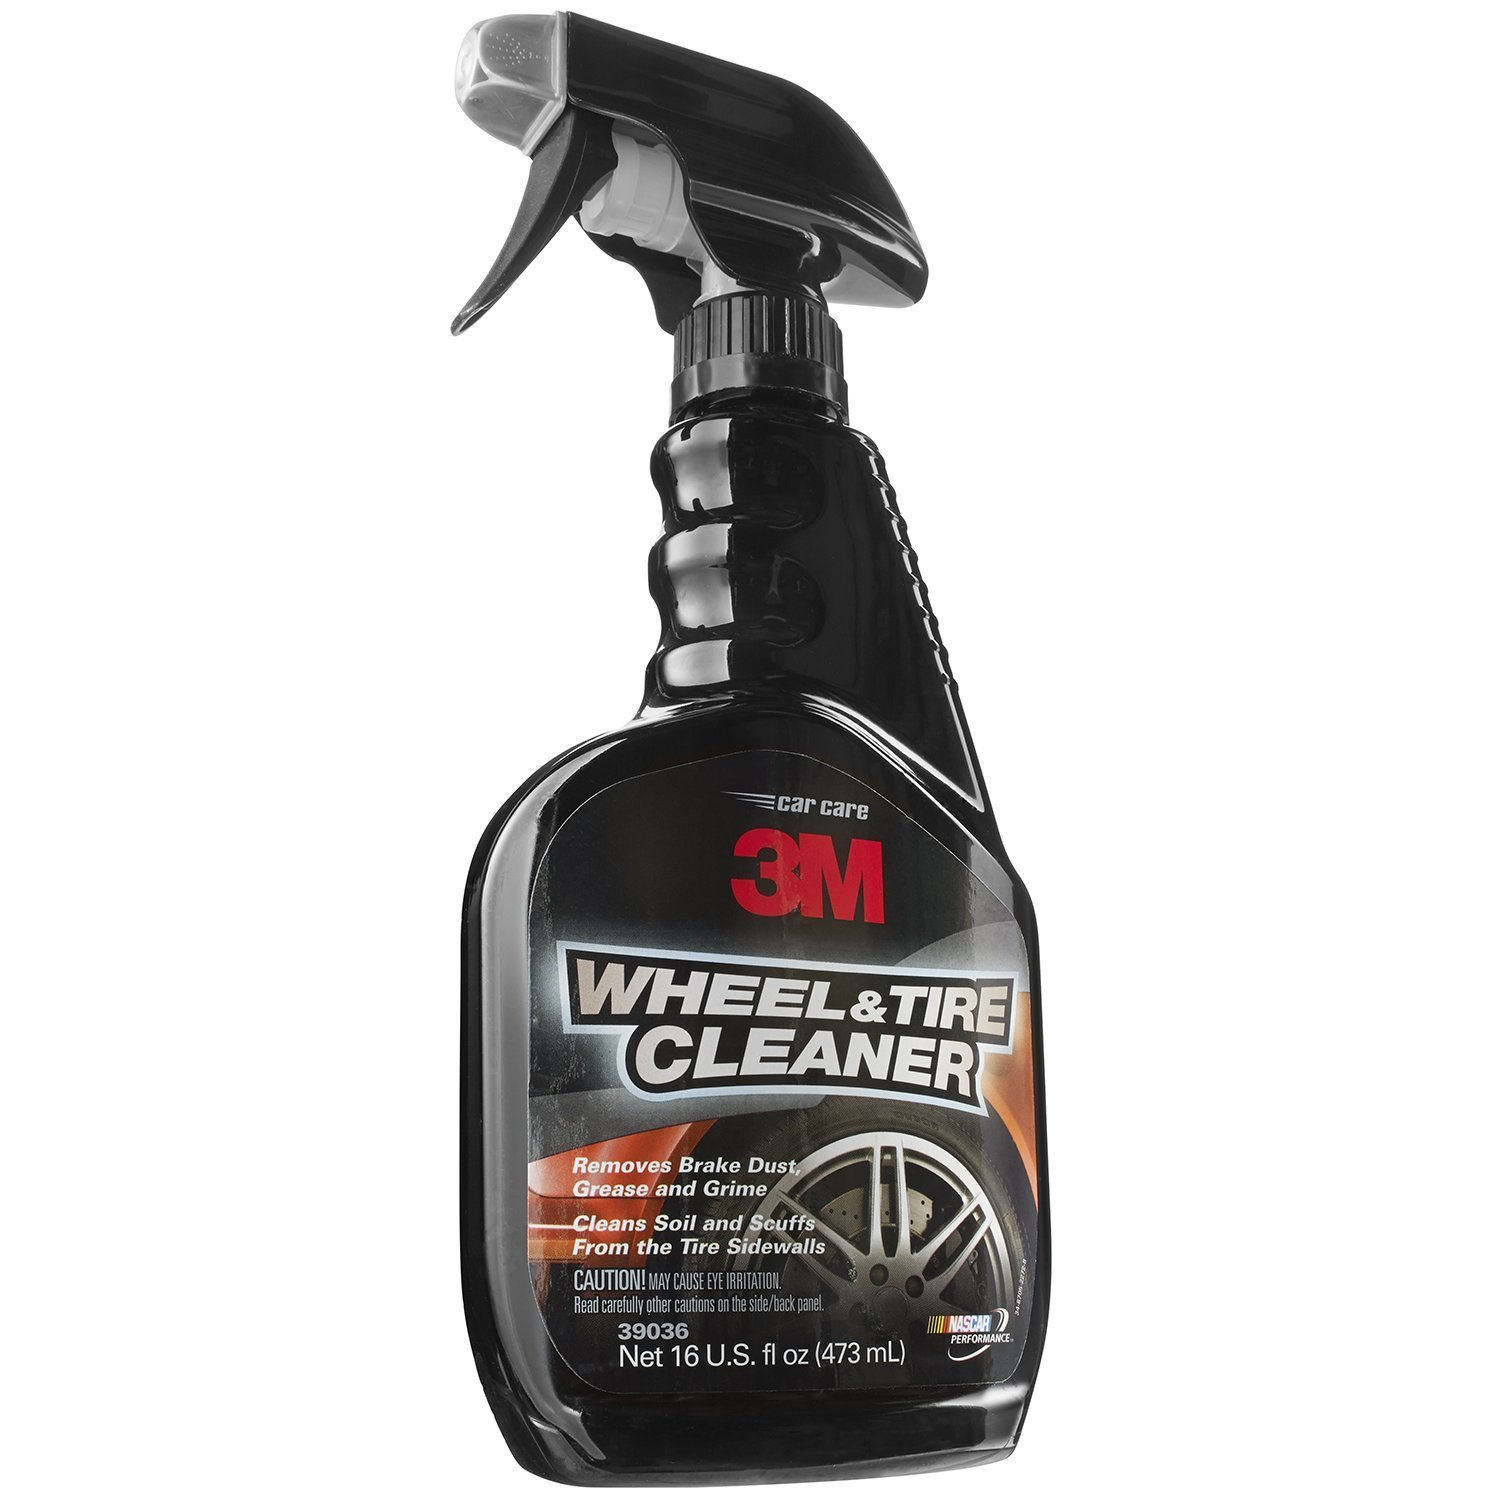 3M Wheel & Tire Cleaner 473ml